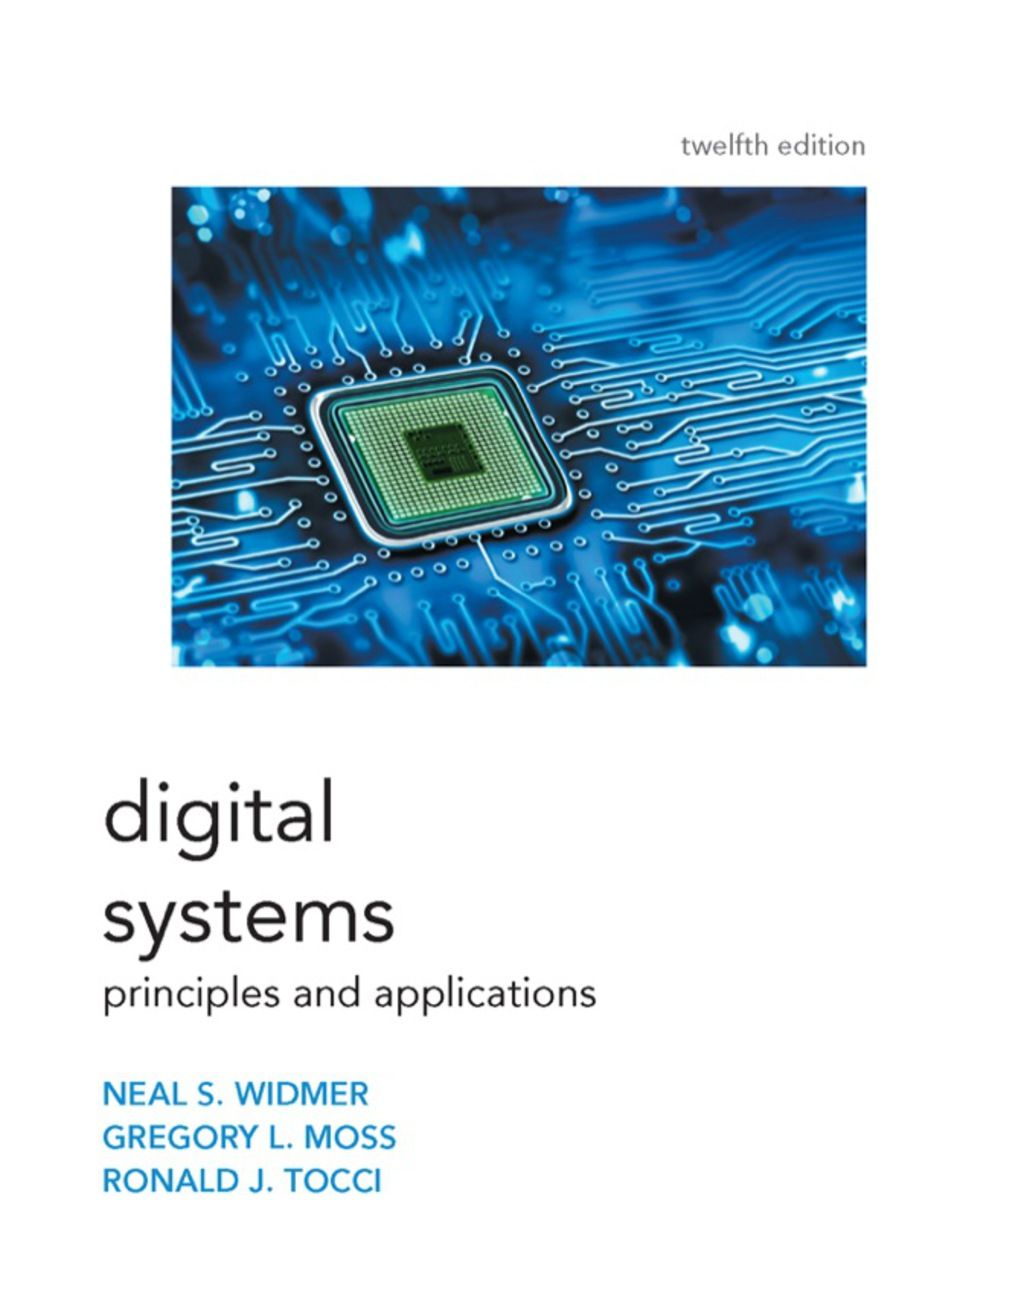 Digital Systems (eBook Rental) Digital, Ebooks